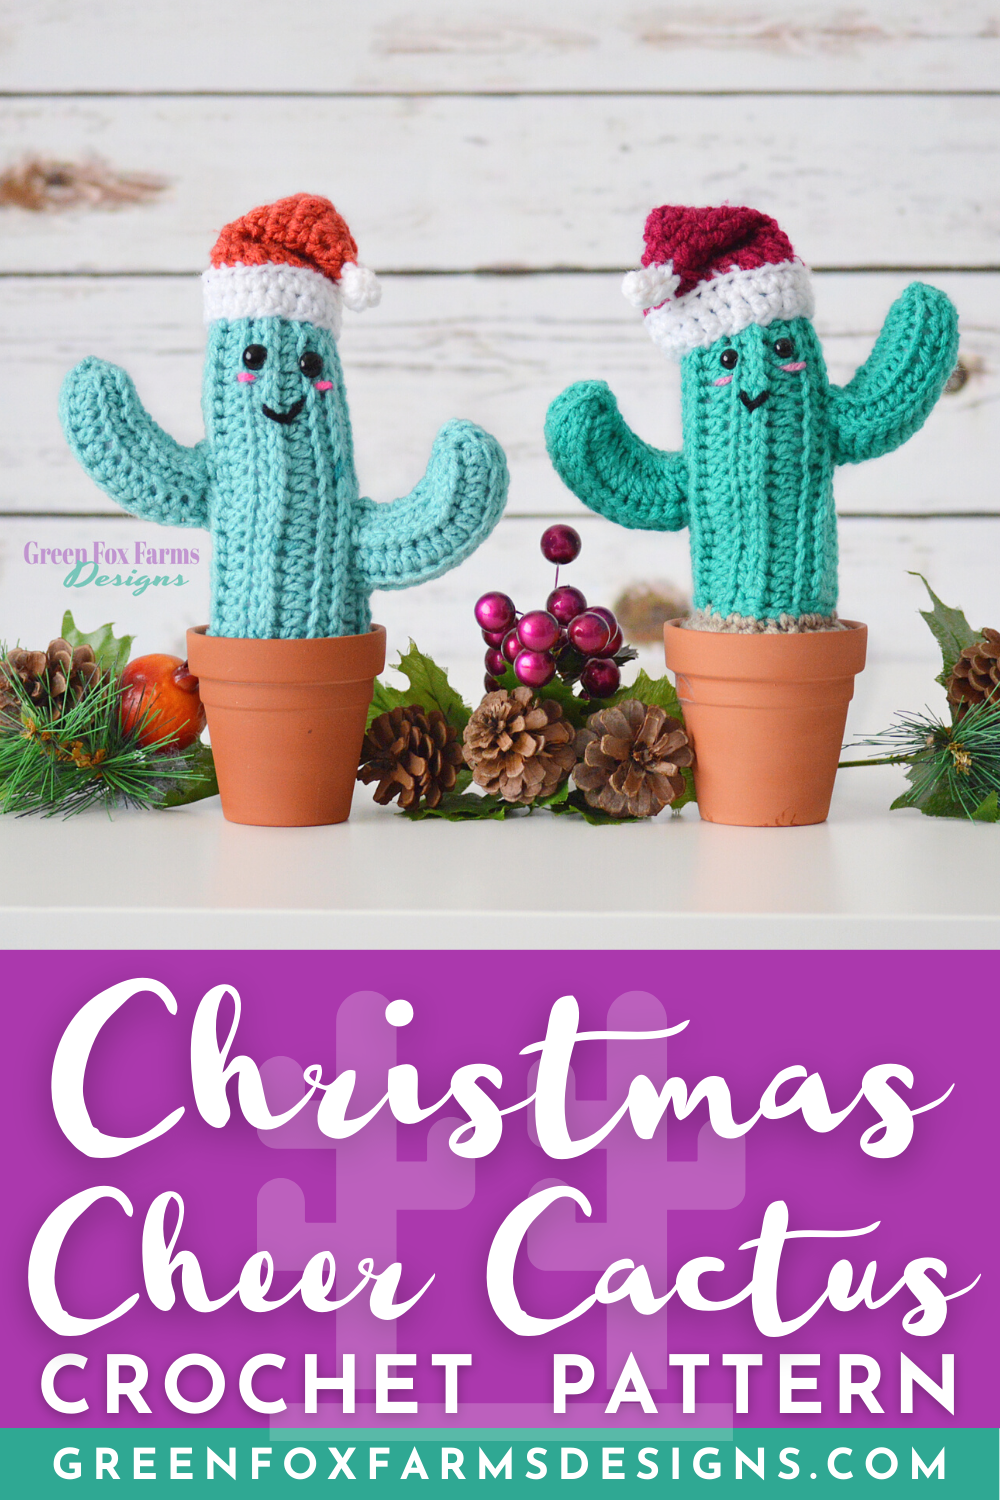 Crochet Christmas Cheer Cactus Pattern. Crochet Pattern for cute cactus with Santa Hat perfect for decorating for the holidays! Green Cactus with Red and White Santa Hat and kawaii face makes a unique and fun Christmas decoration or Holiday Gift! Crochet Pattern by greenfoxfarmsdesigns.com